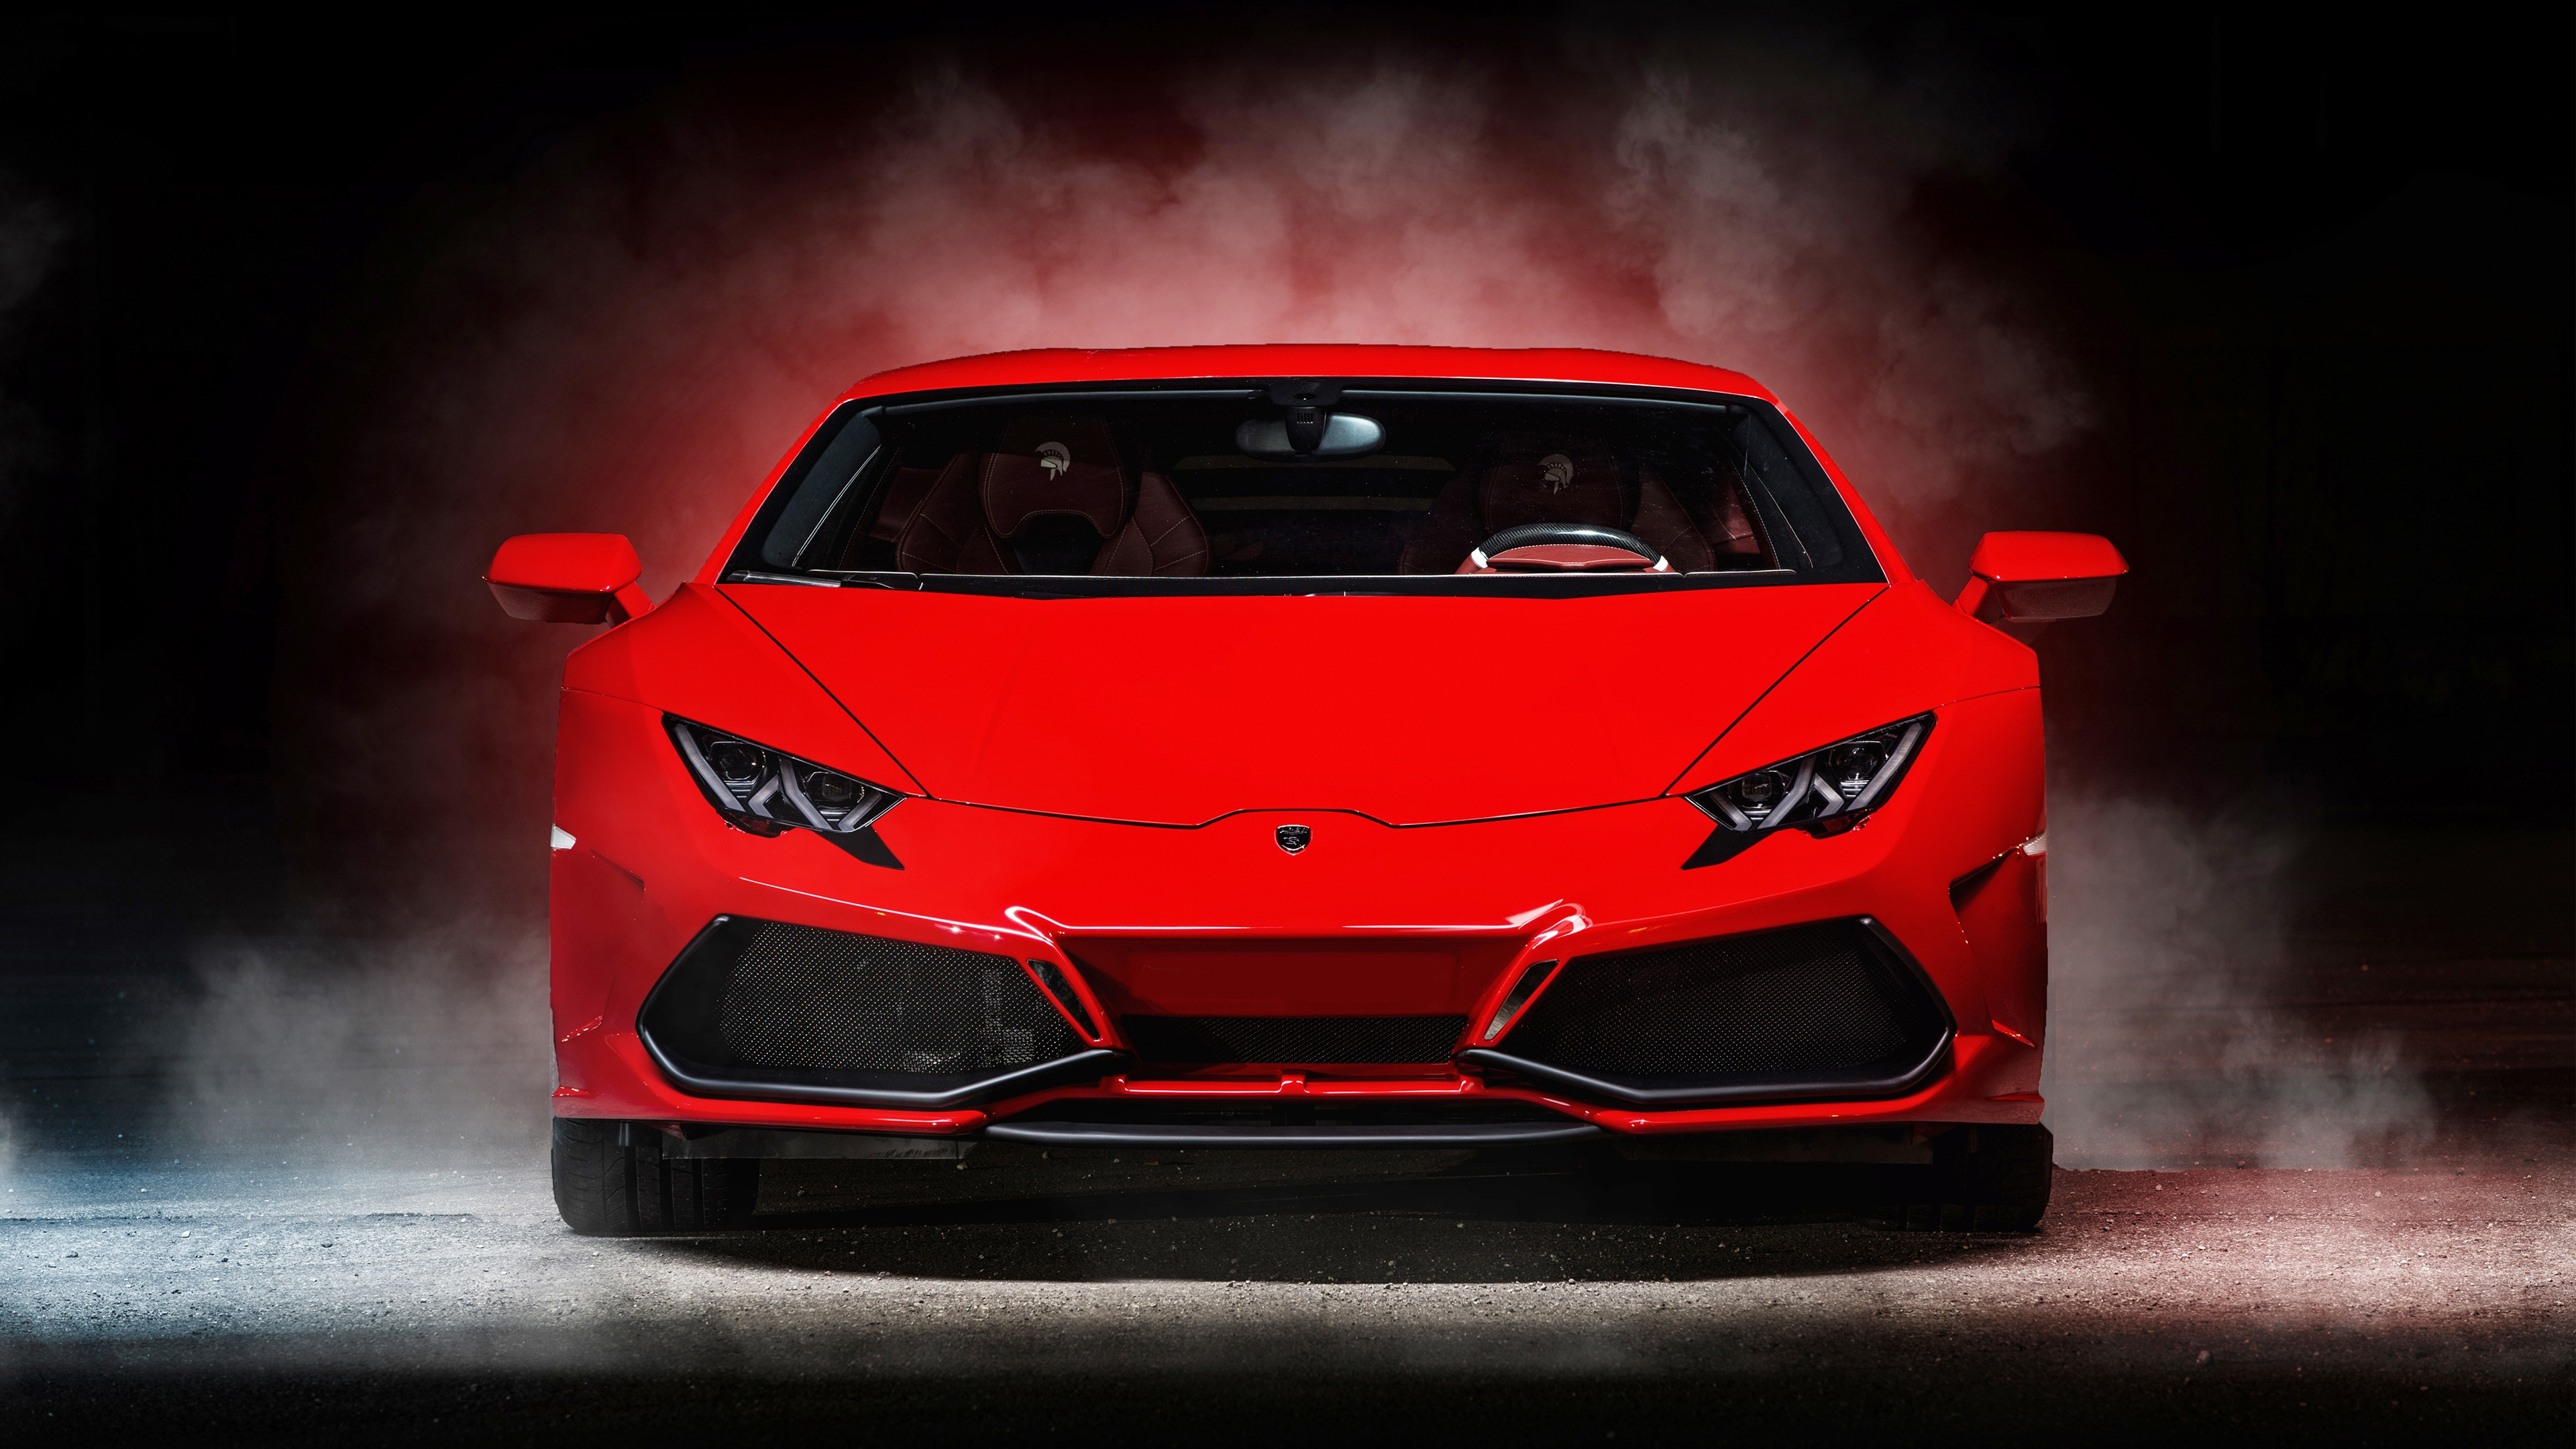 2015 Ares Design Lamborghini Huracan Wallpaper  HD Car Wallpapers